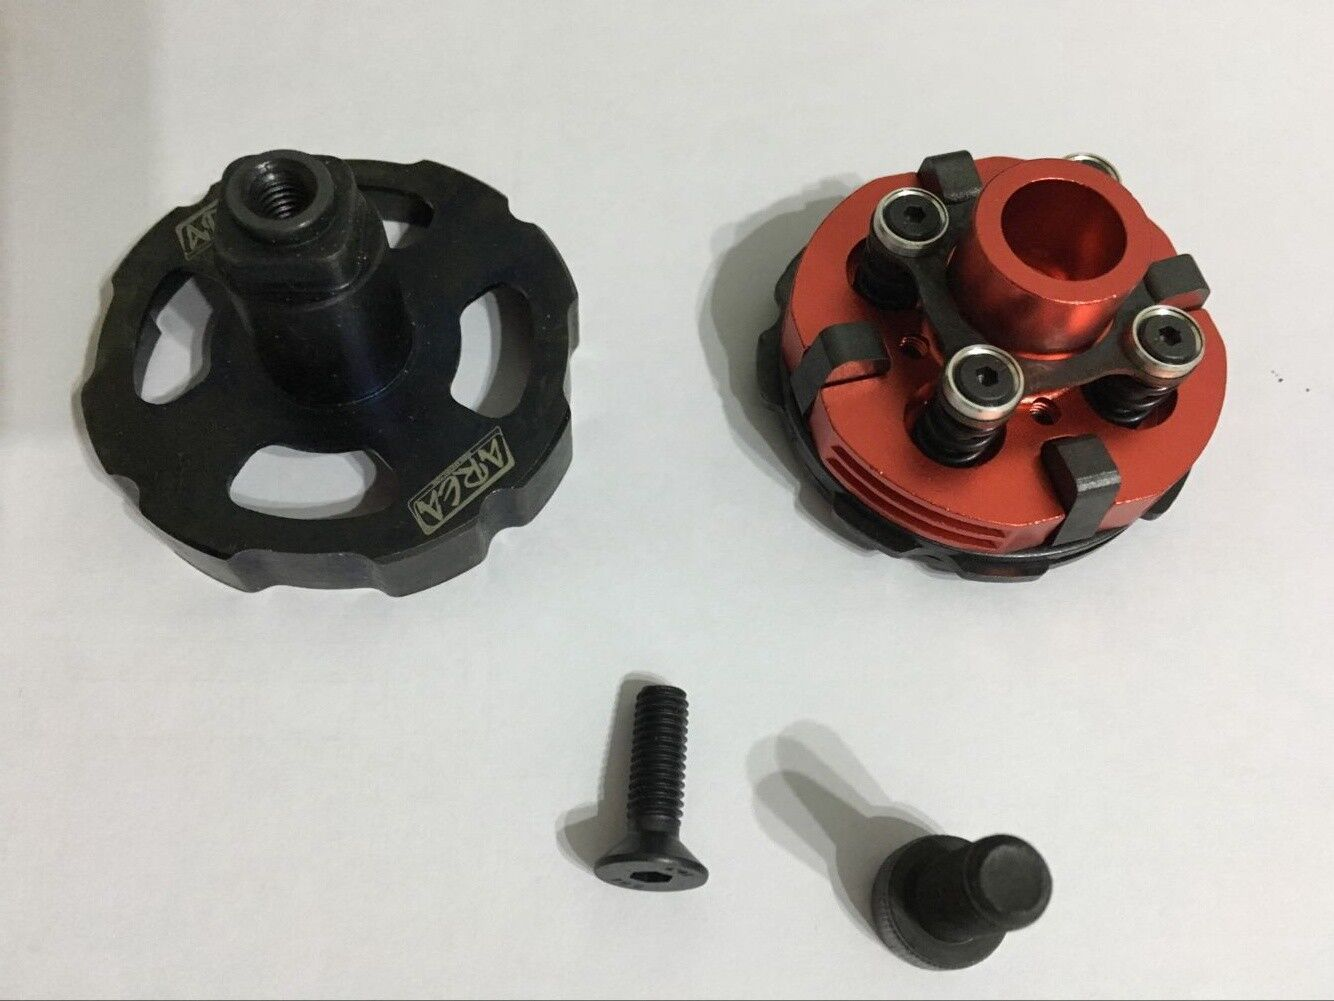 Area clutch bell competitive competitive competitive type centrifugal clutch assembly for MCD RR5 XS-5 76e572